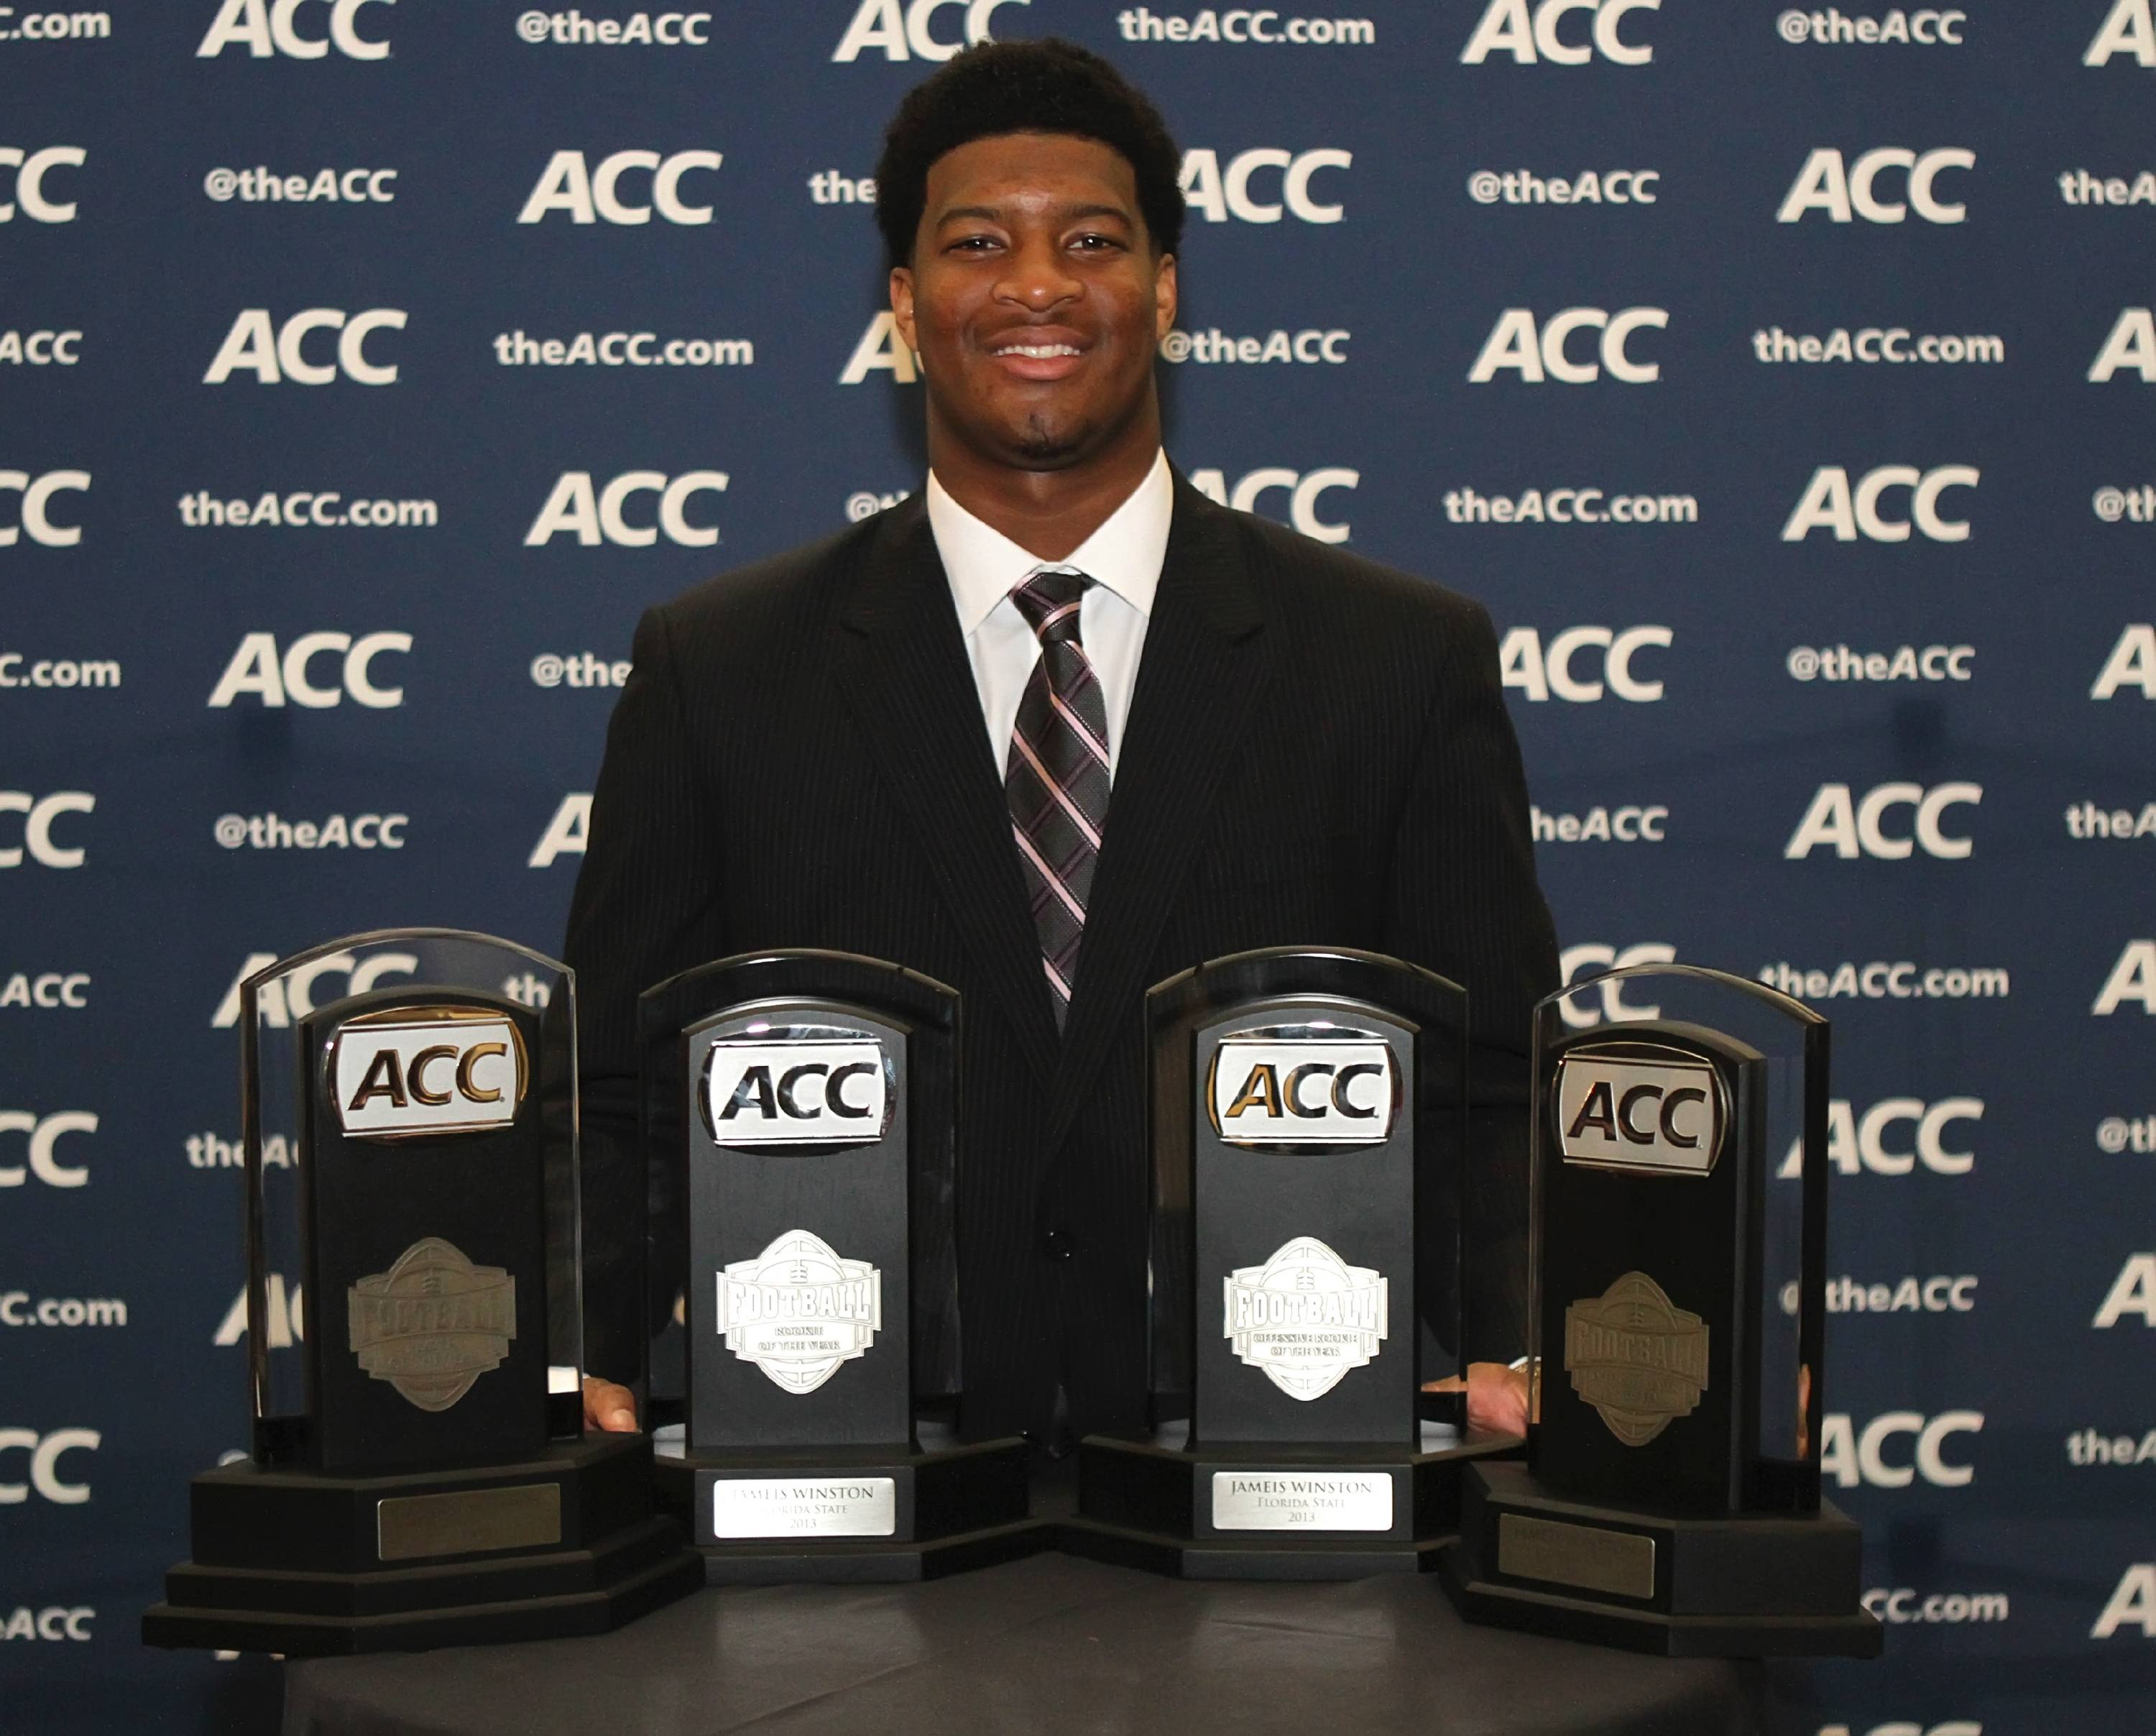 Jameis Winston at the ACC Night of Legends